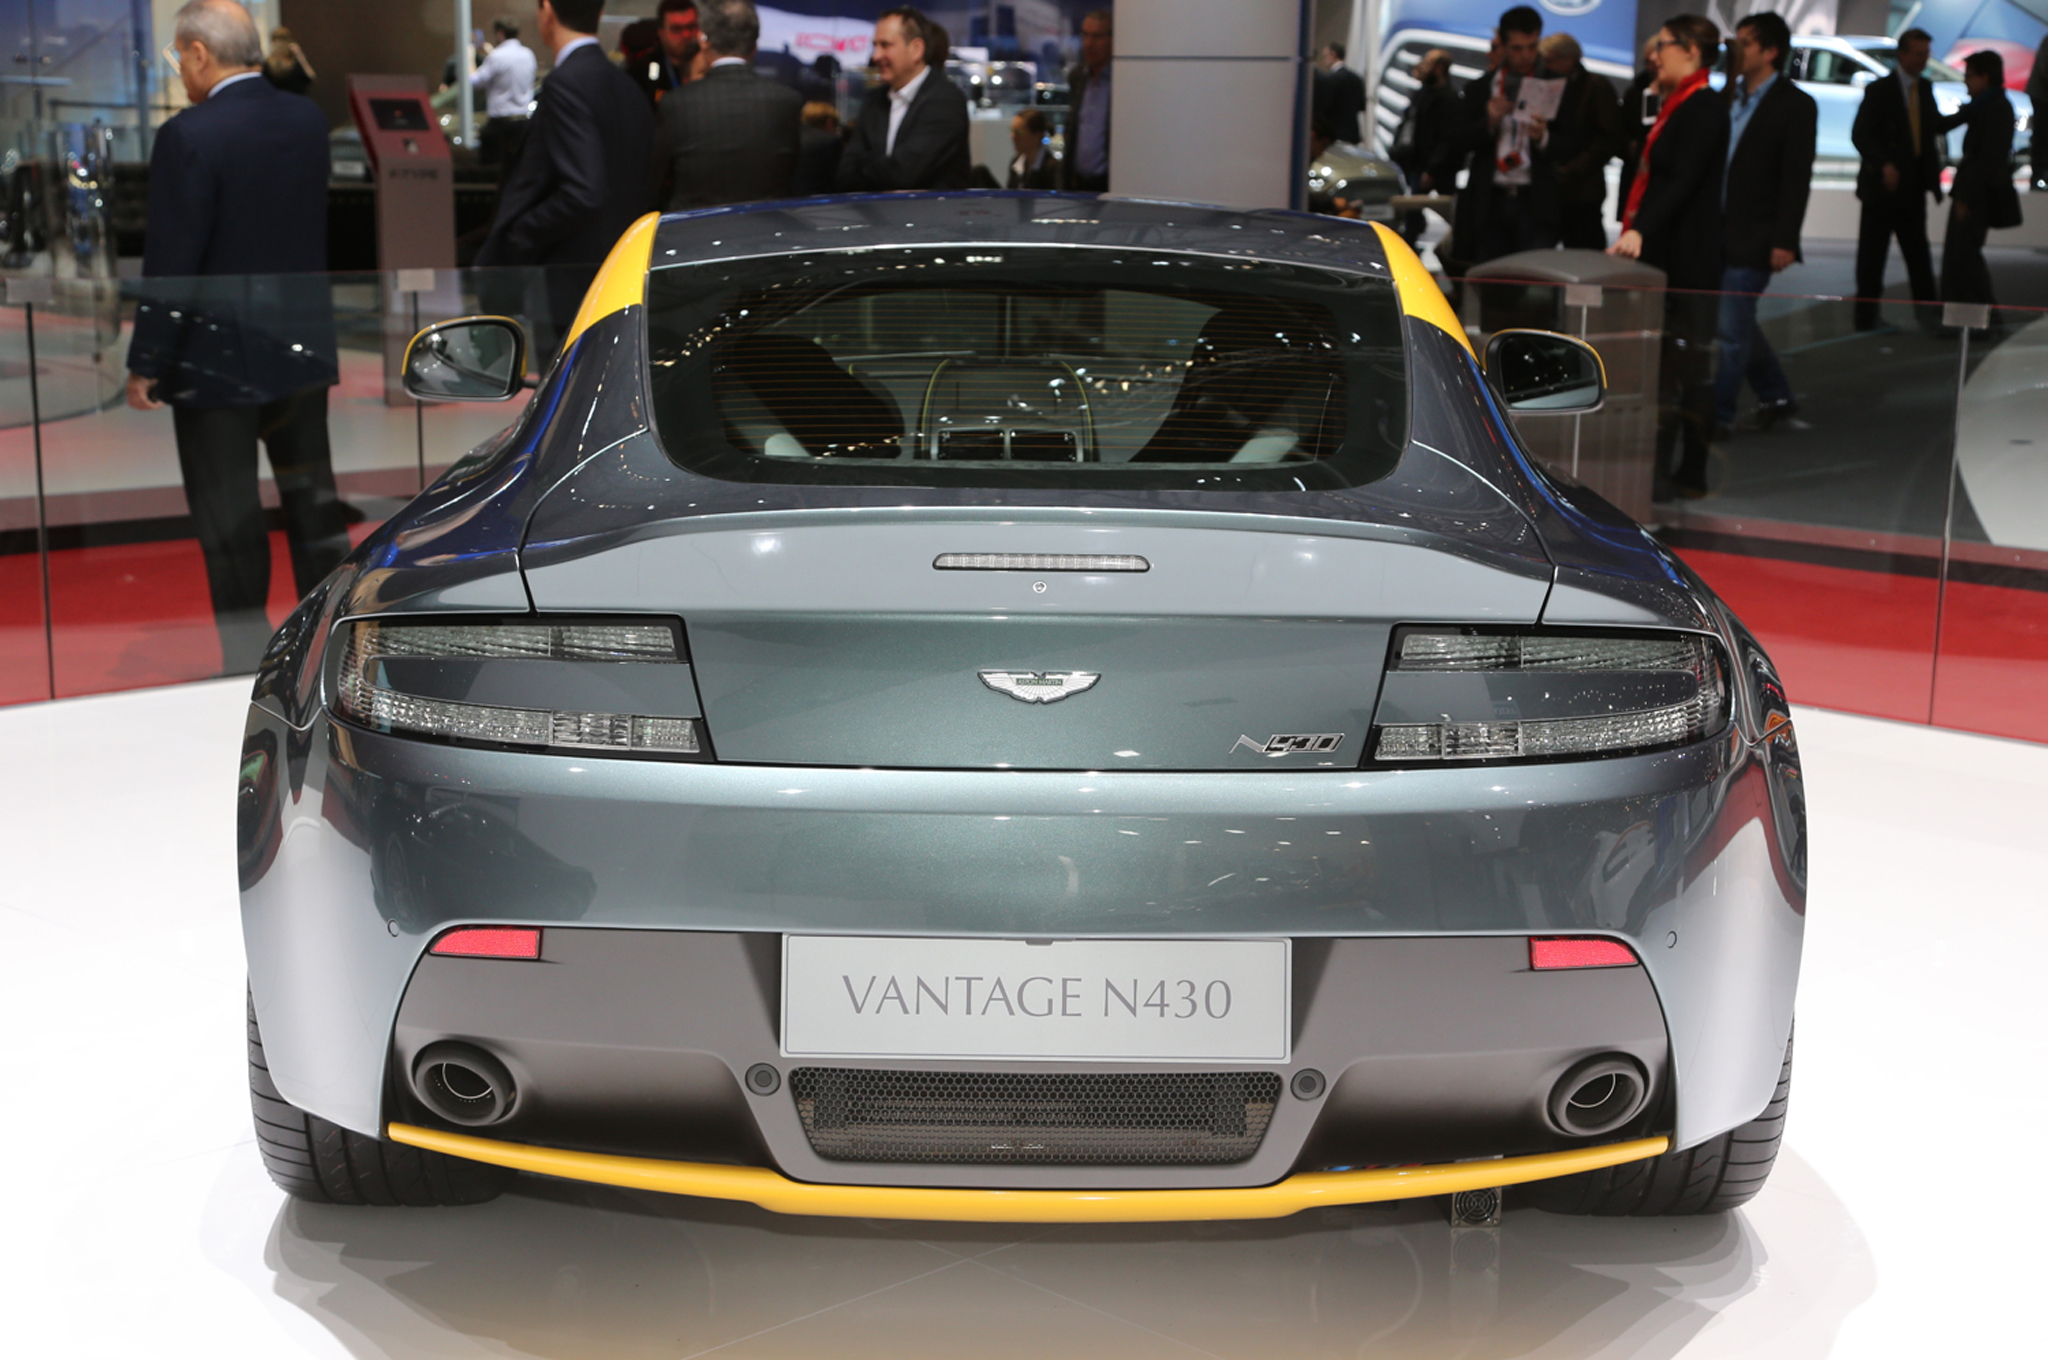 2015 Aston Martin V8 Vantage Gt Rear Design (View 1 of 7)